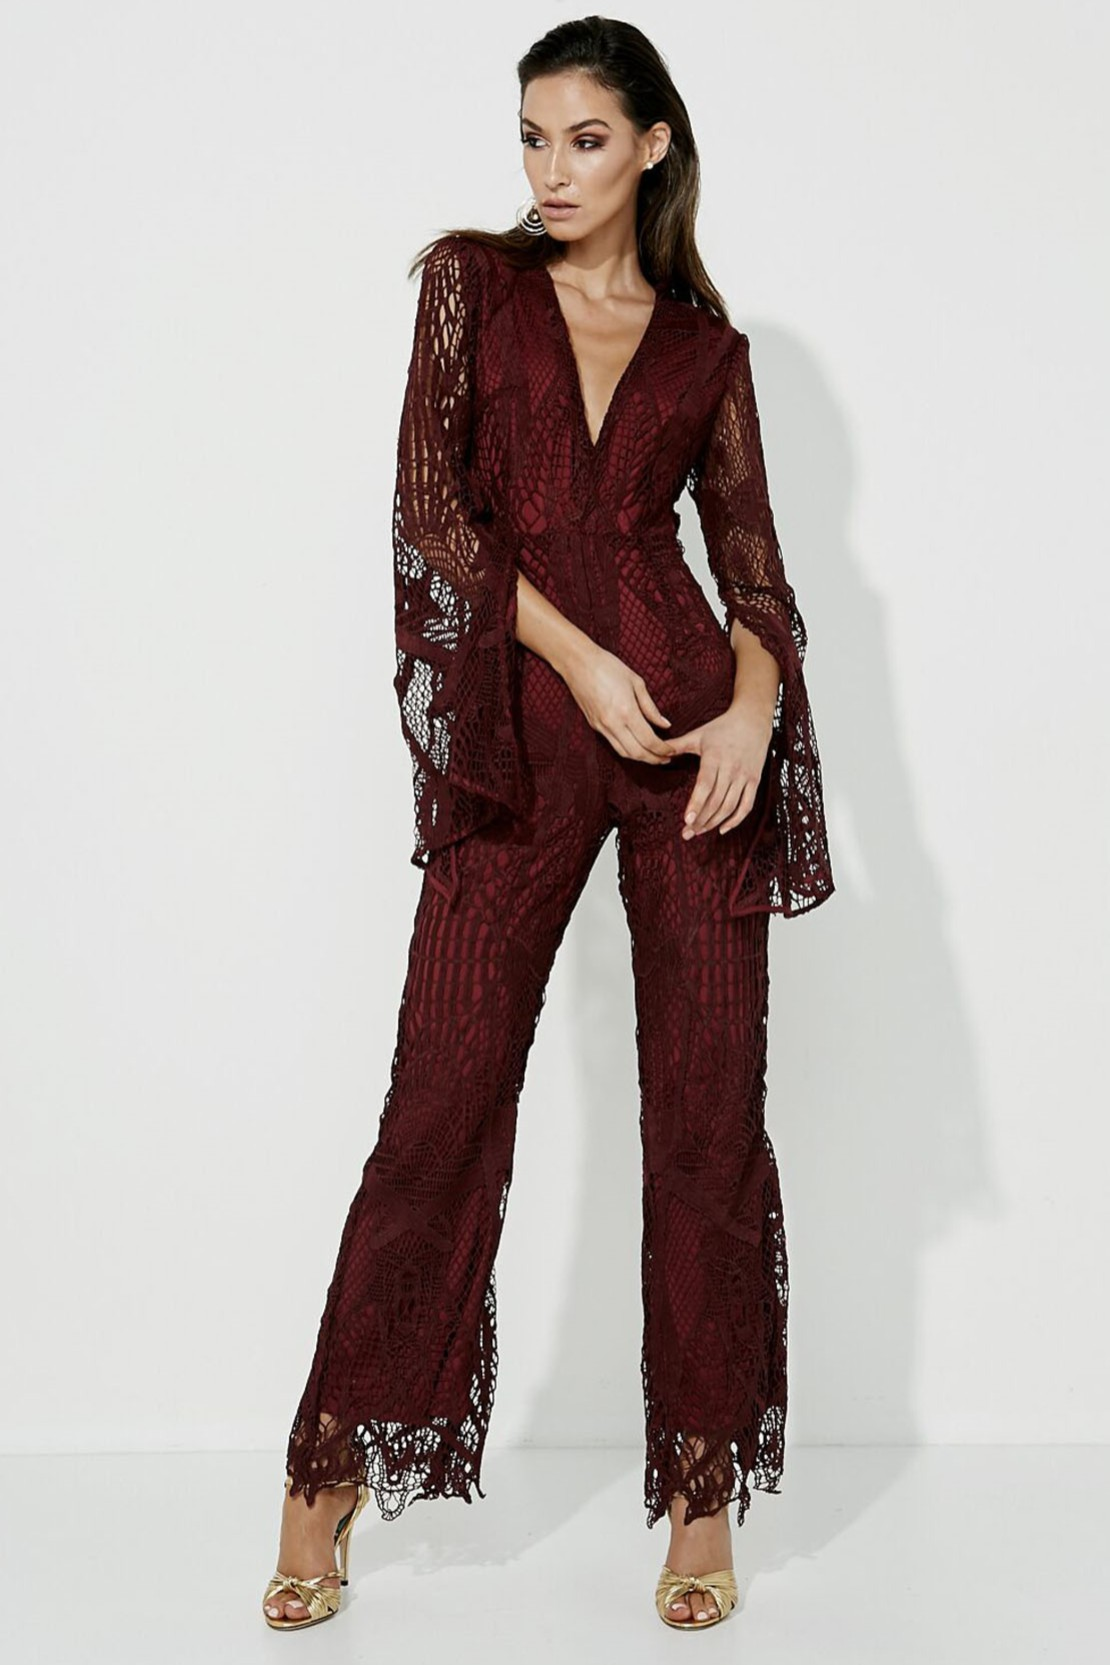 The Devil's Advocate Jumpsuit